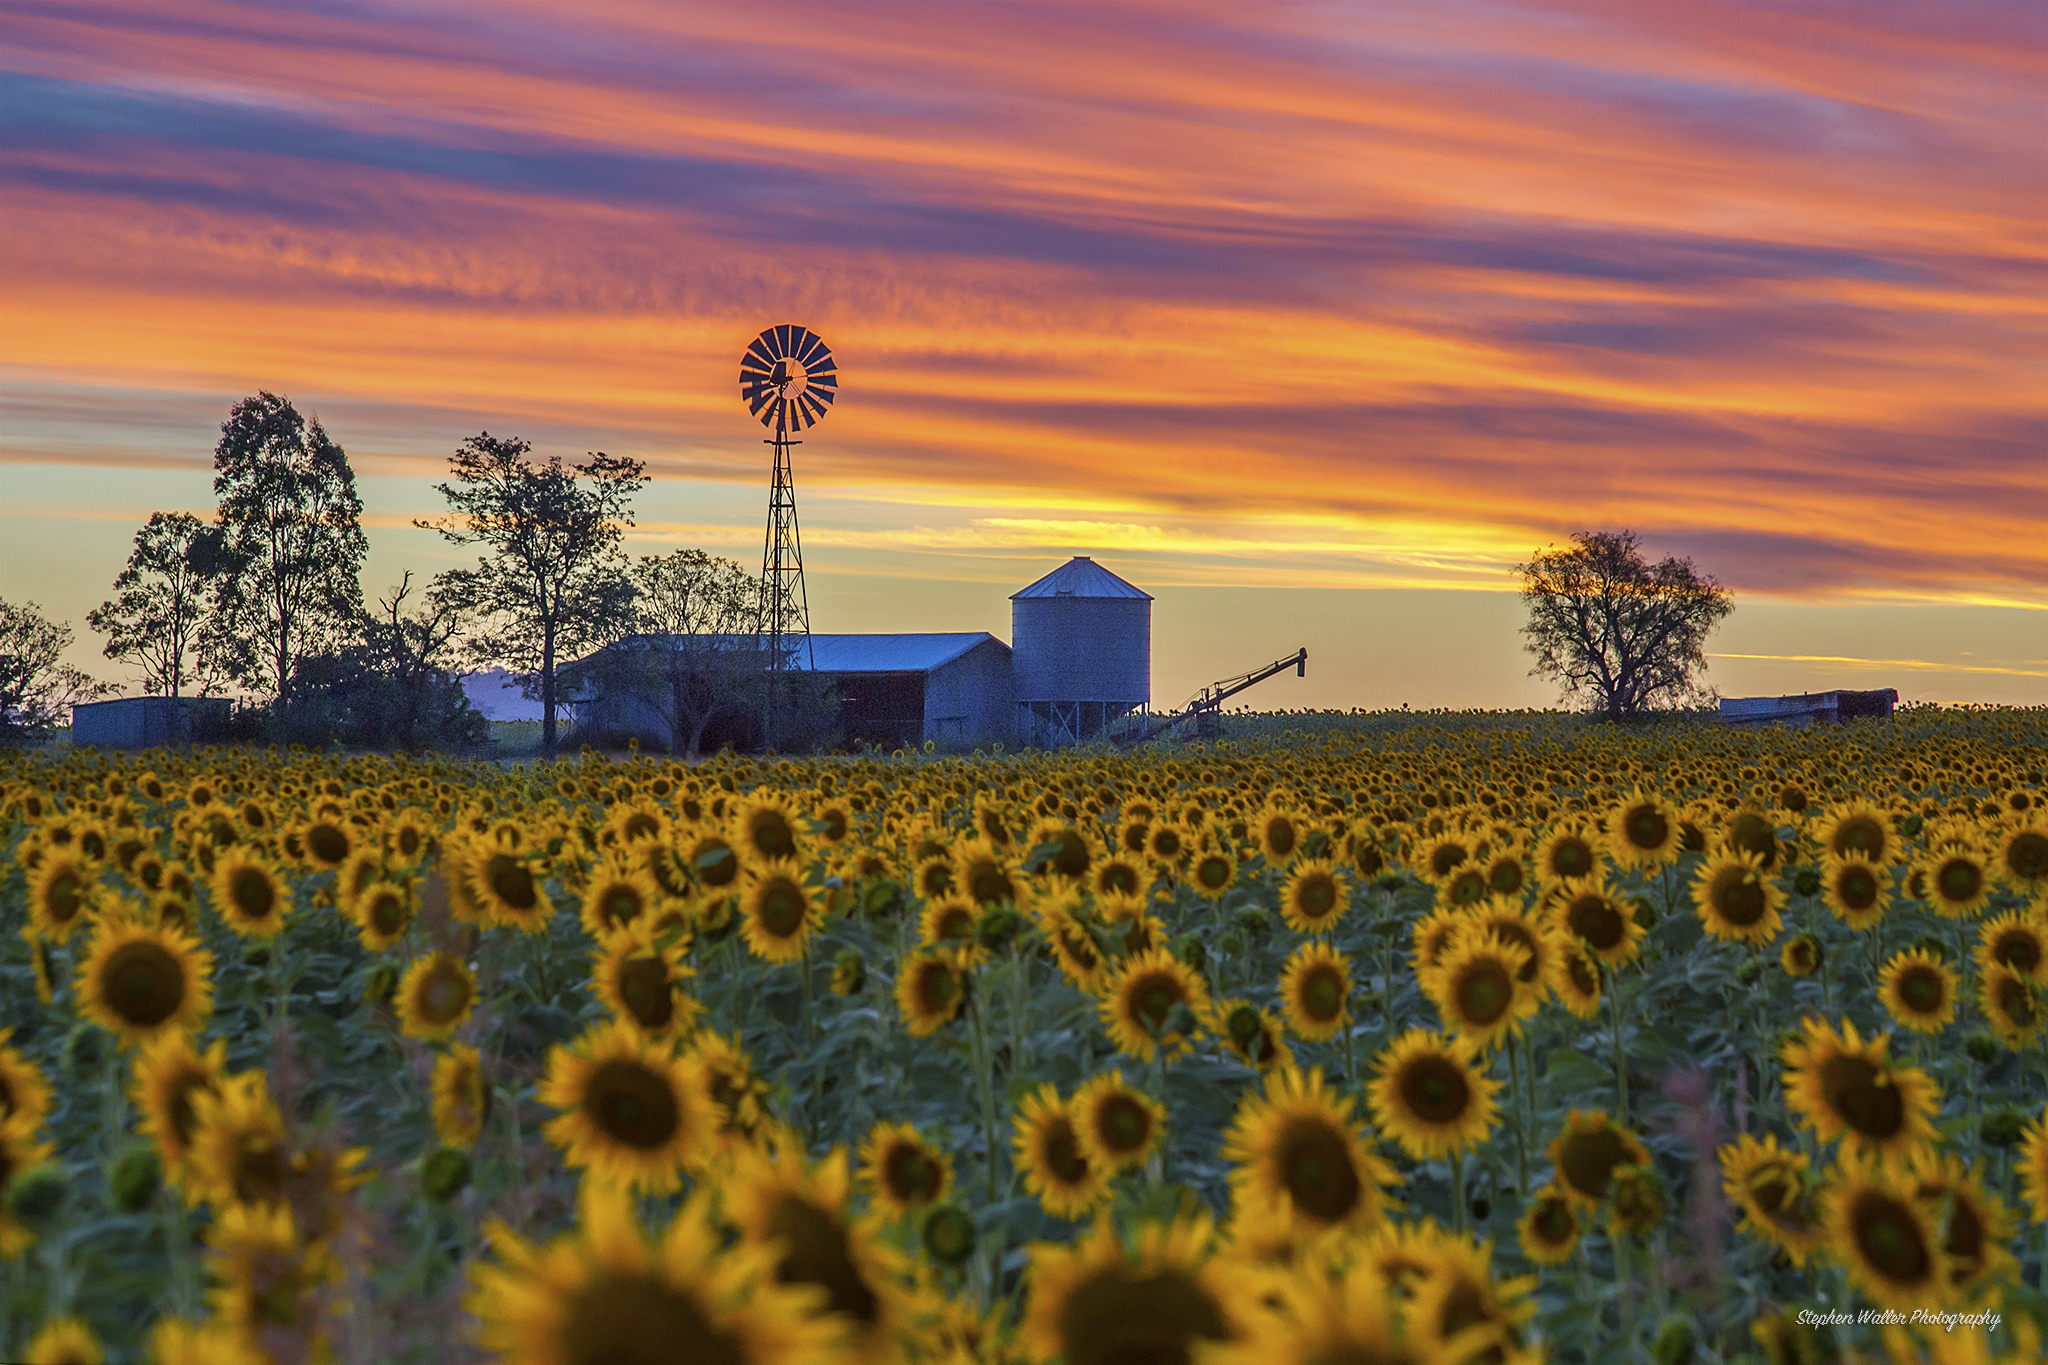 Sunflowers and Windmill at Sunset